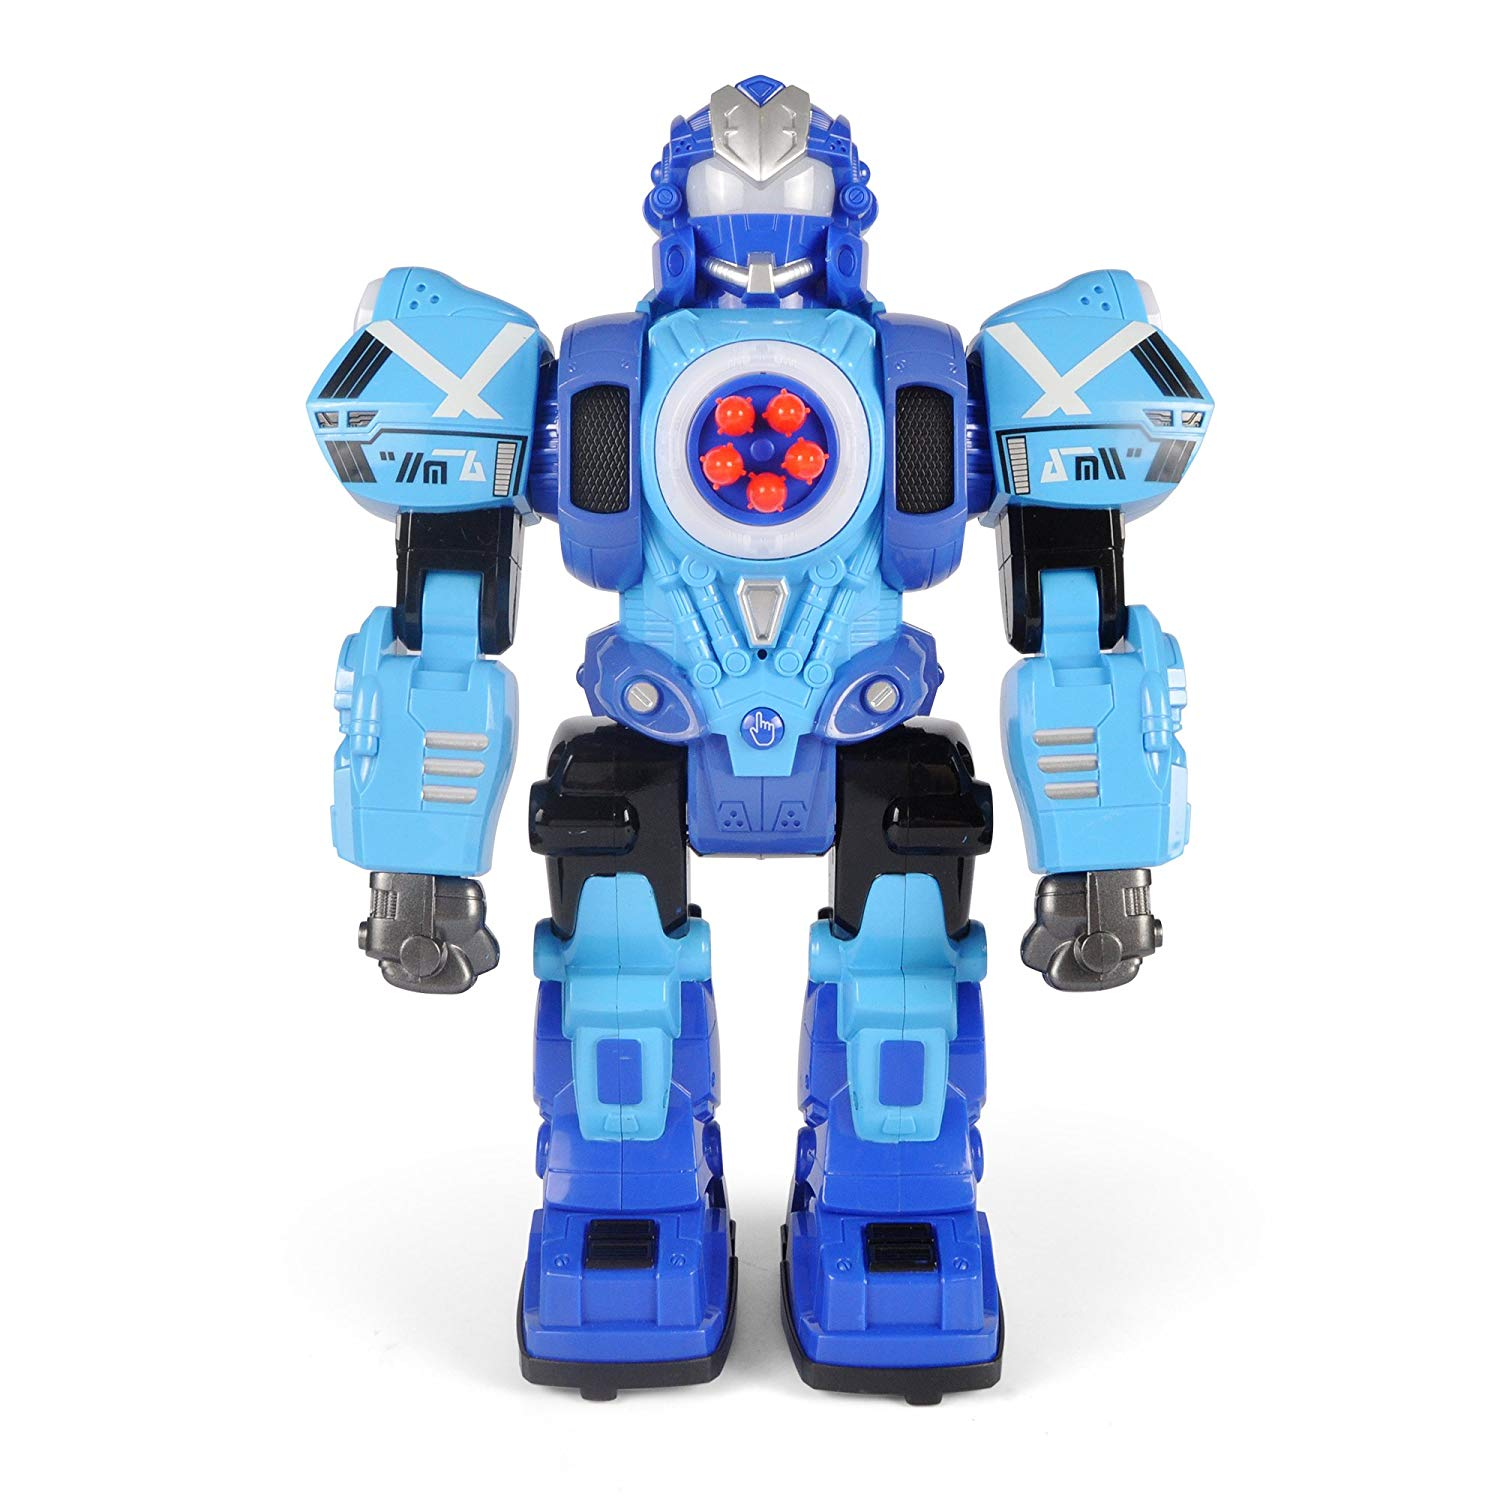 Large Remote Control Robot Toy for Kids - RC Robot Shoots Darts, Walks, Talks, and Dances (10 Functions)